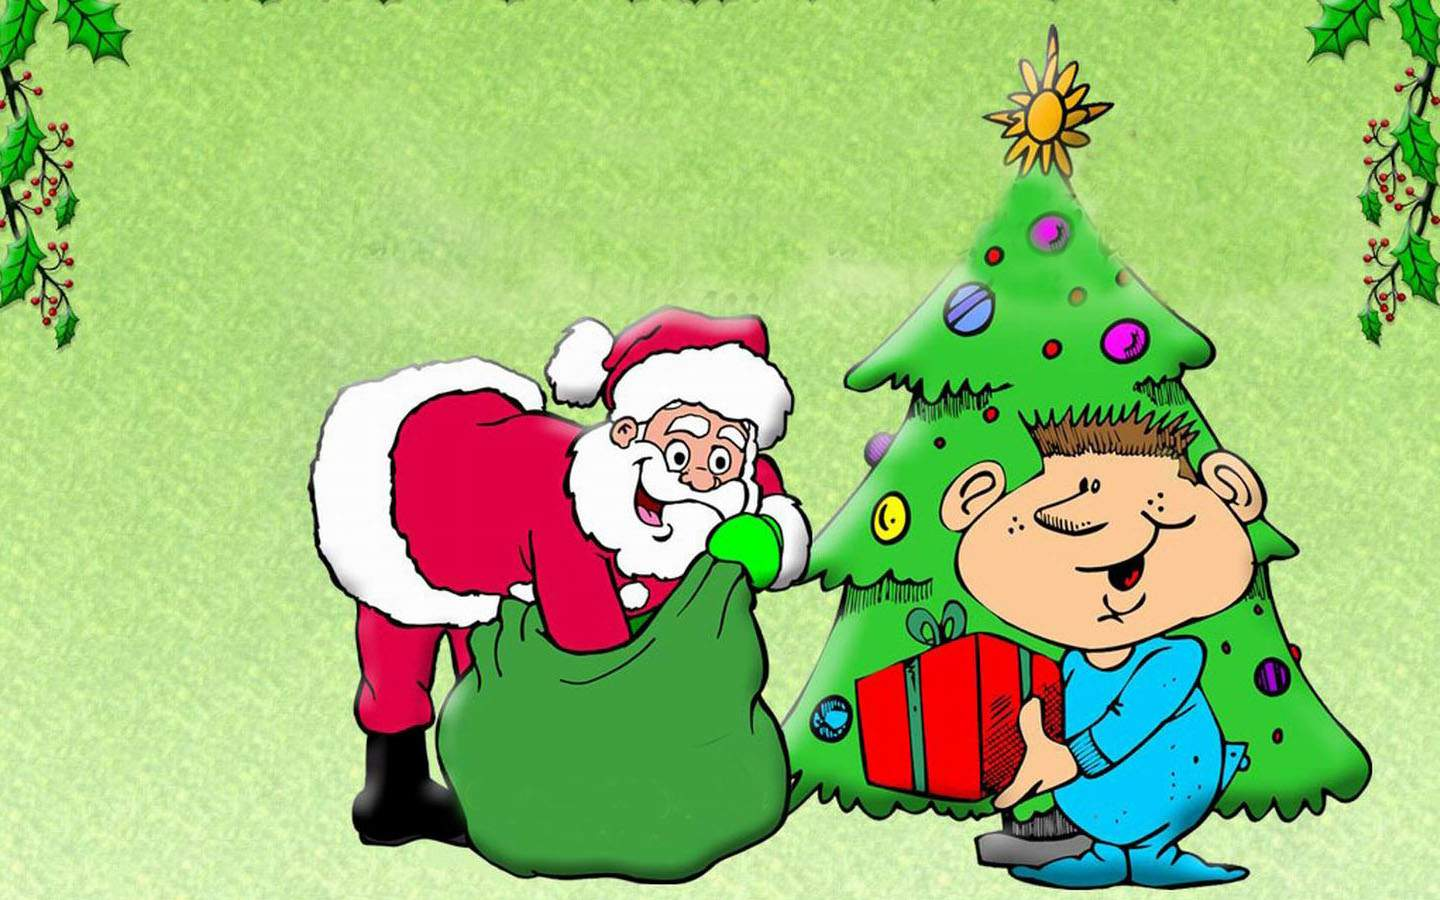 Funny Christmas Wallpapers Free - Wallpaper Cave